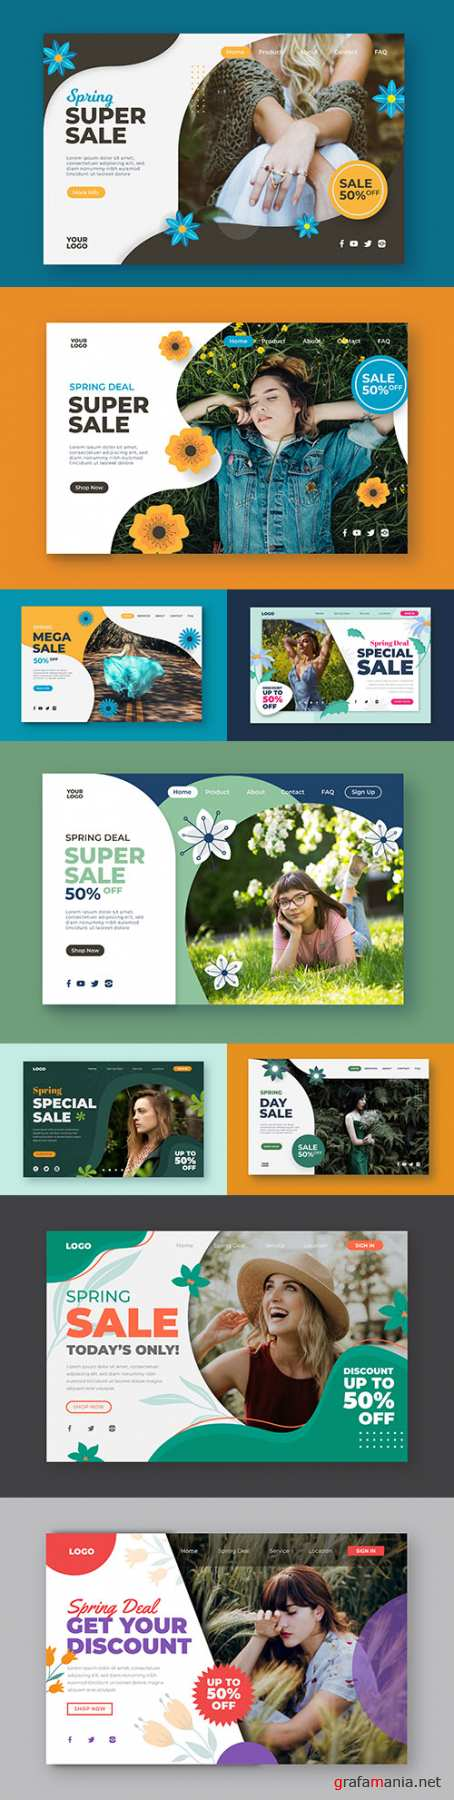 Super sale and discount design landing page